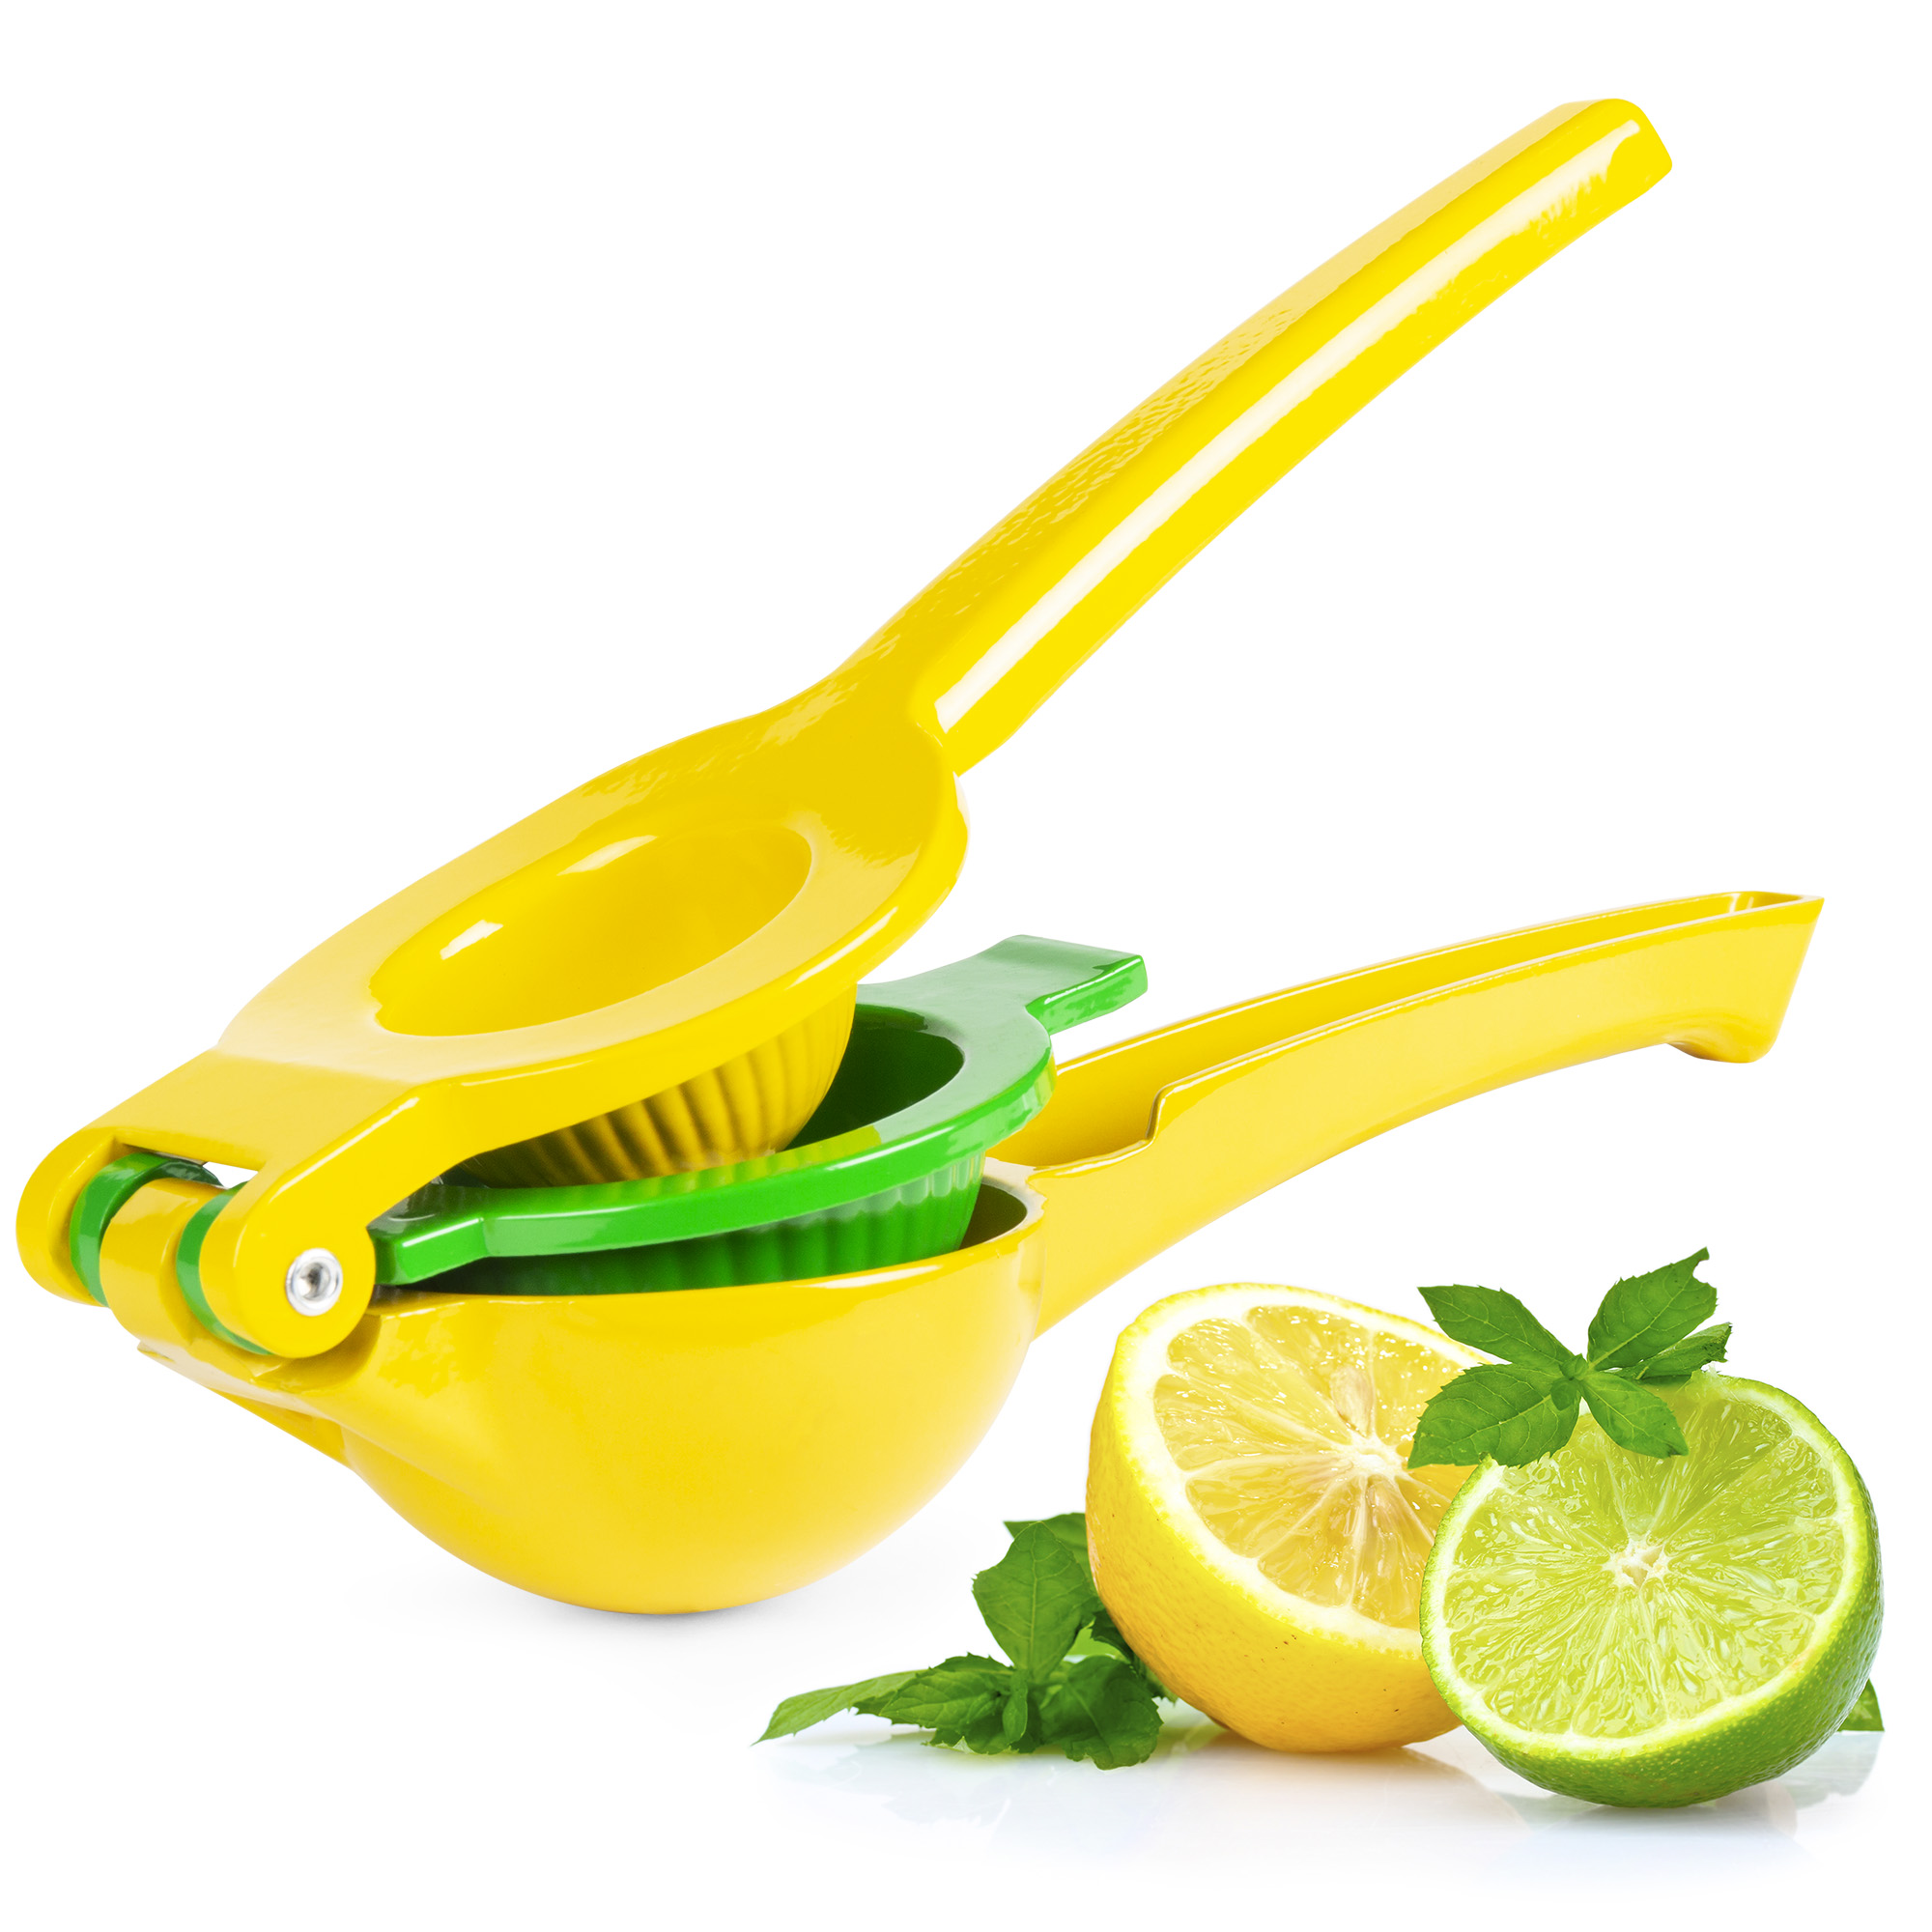 Best Choice Products 2-in-1 Kitchen Bar Manual Heavy-Duty Metal Lemon Lime Citrus Juice Extract Press Squeezer Tool, Dishwasher Safe - Yellow/Green